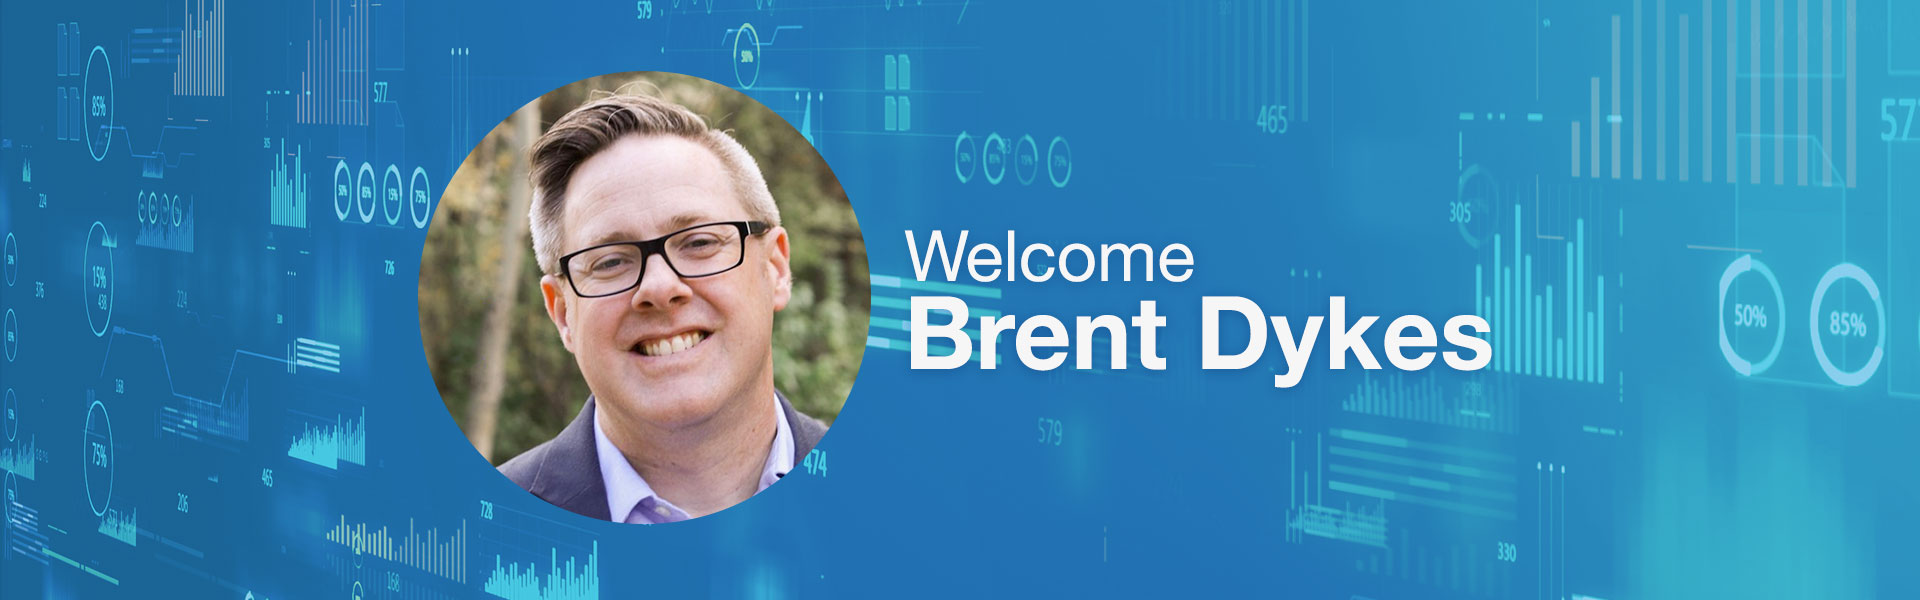 welcome brent dykes